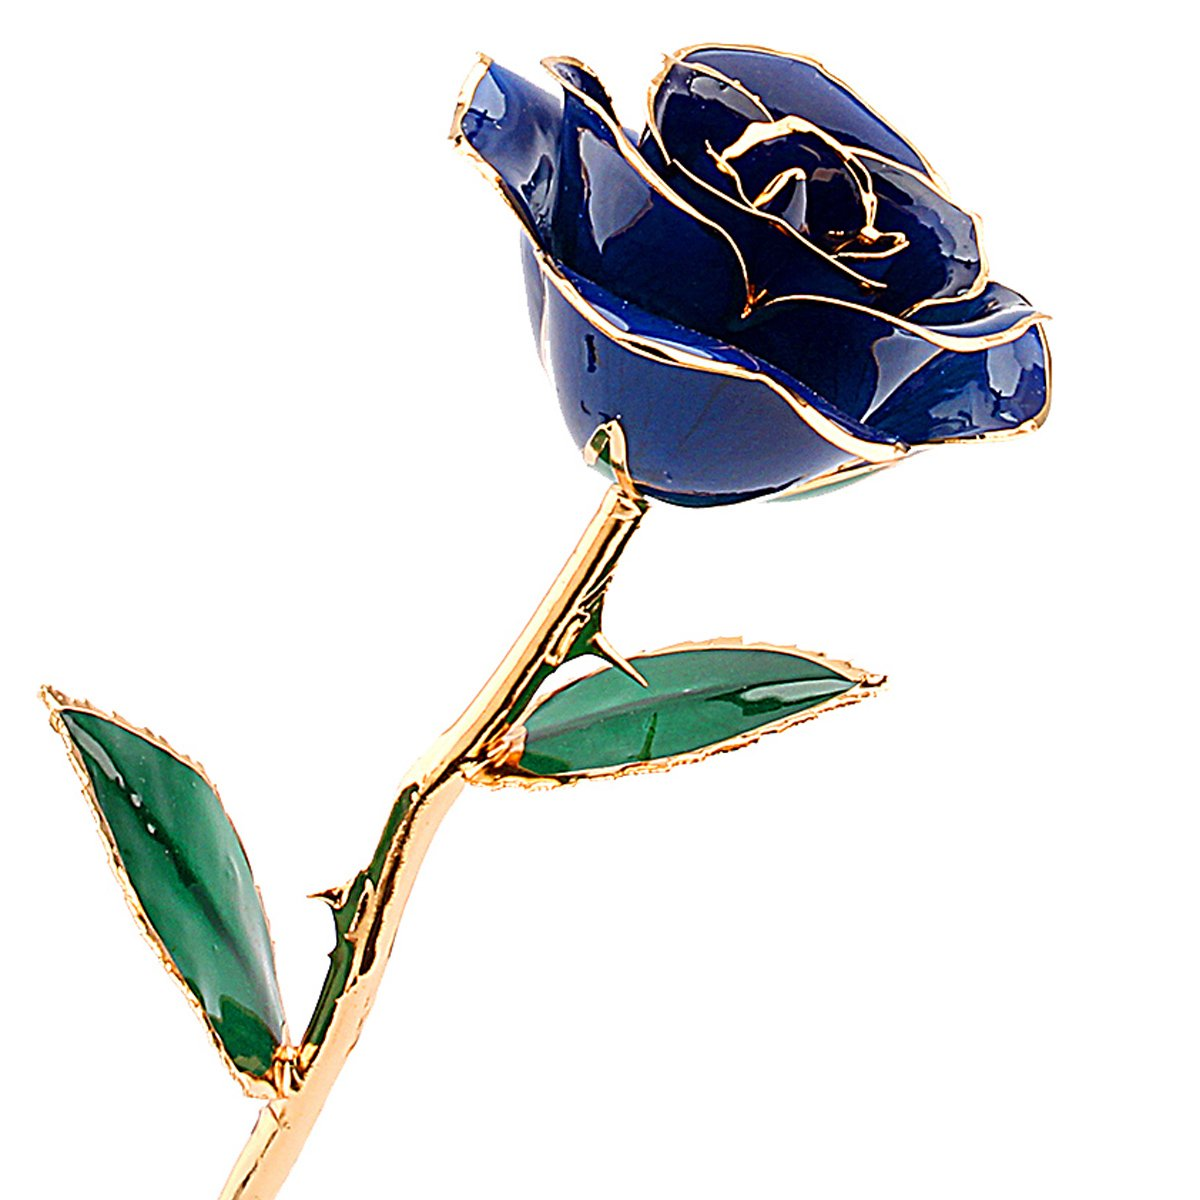 ZJchao Deep Blue Gold Rose for Women, Love Forever Long Stem Dipped 24k Foil Trim Rose, Best Gift for Valentine's/Mother's/Anniversary/Birthday Day (Blue)